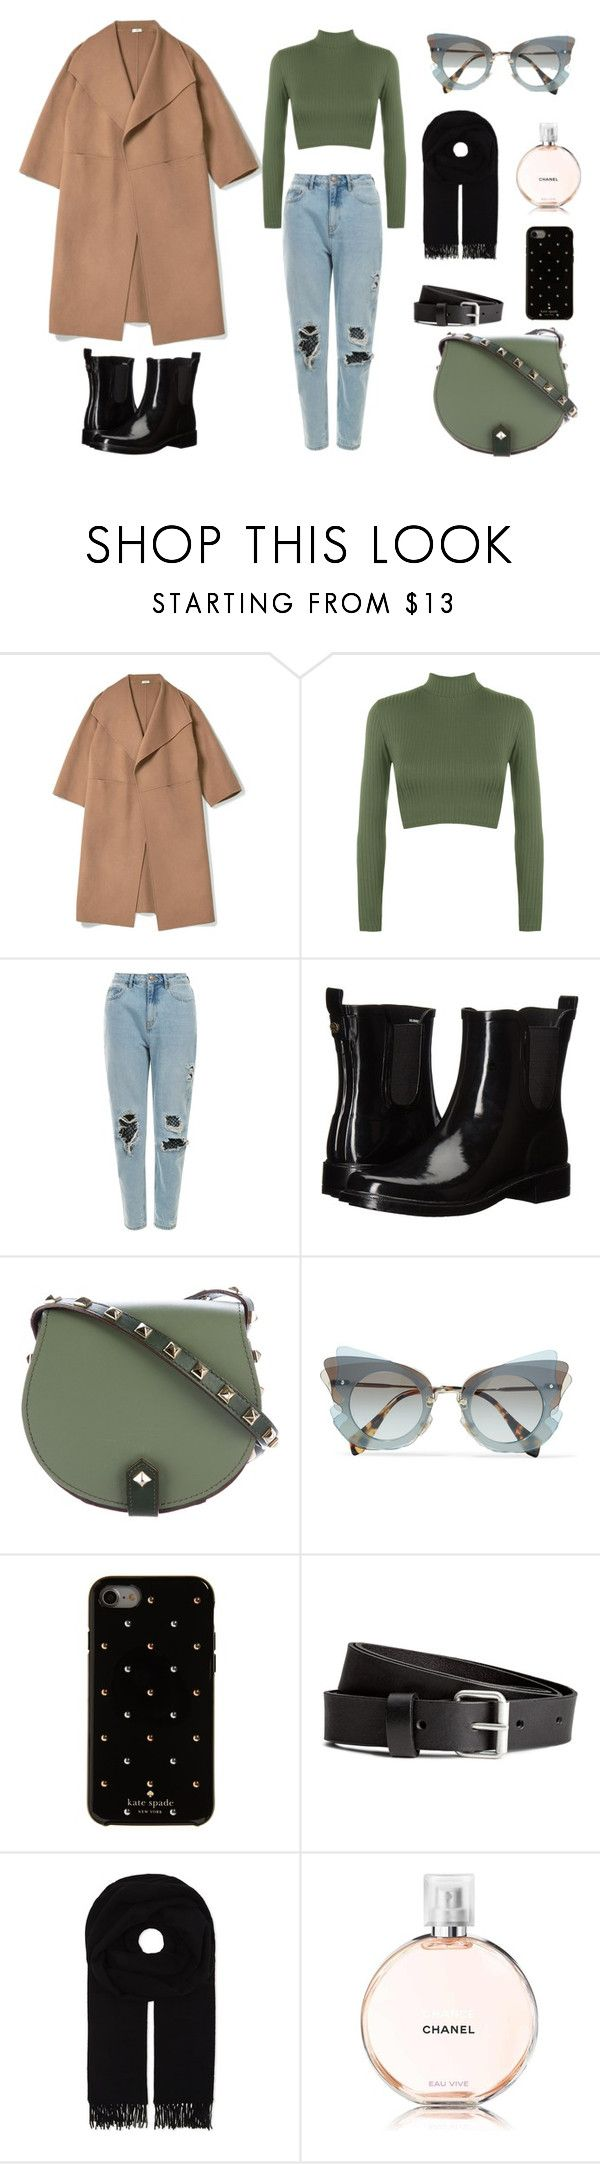 """""""look"""" by ebekkhem on Polyvore featuring мода, WearAll, Tory Burch, Rebecca Minkoff, Miu Miu, Kate Spade, Canada Goose и Chanel"""